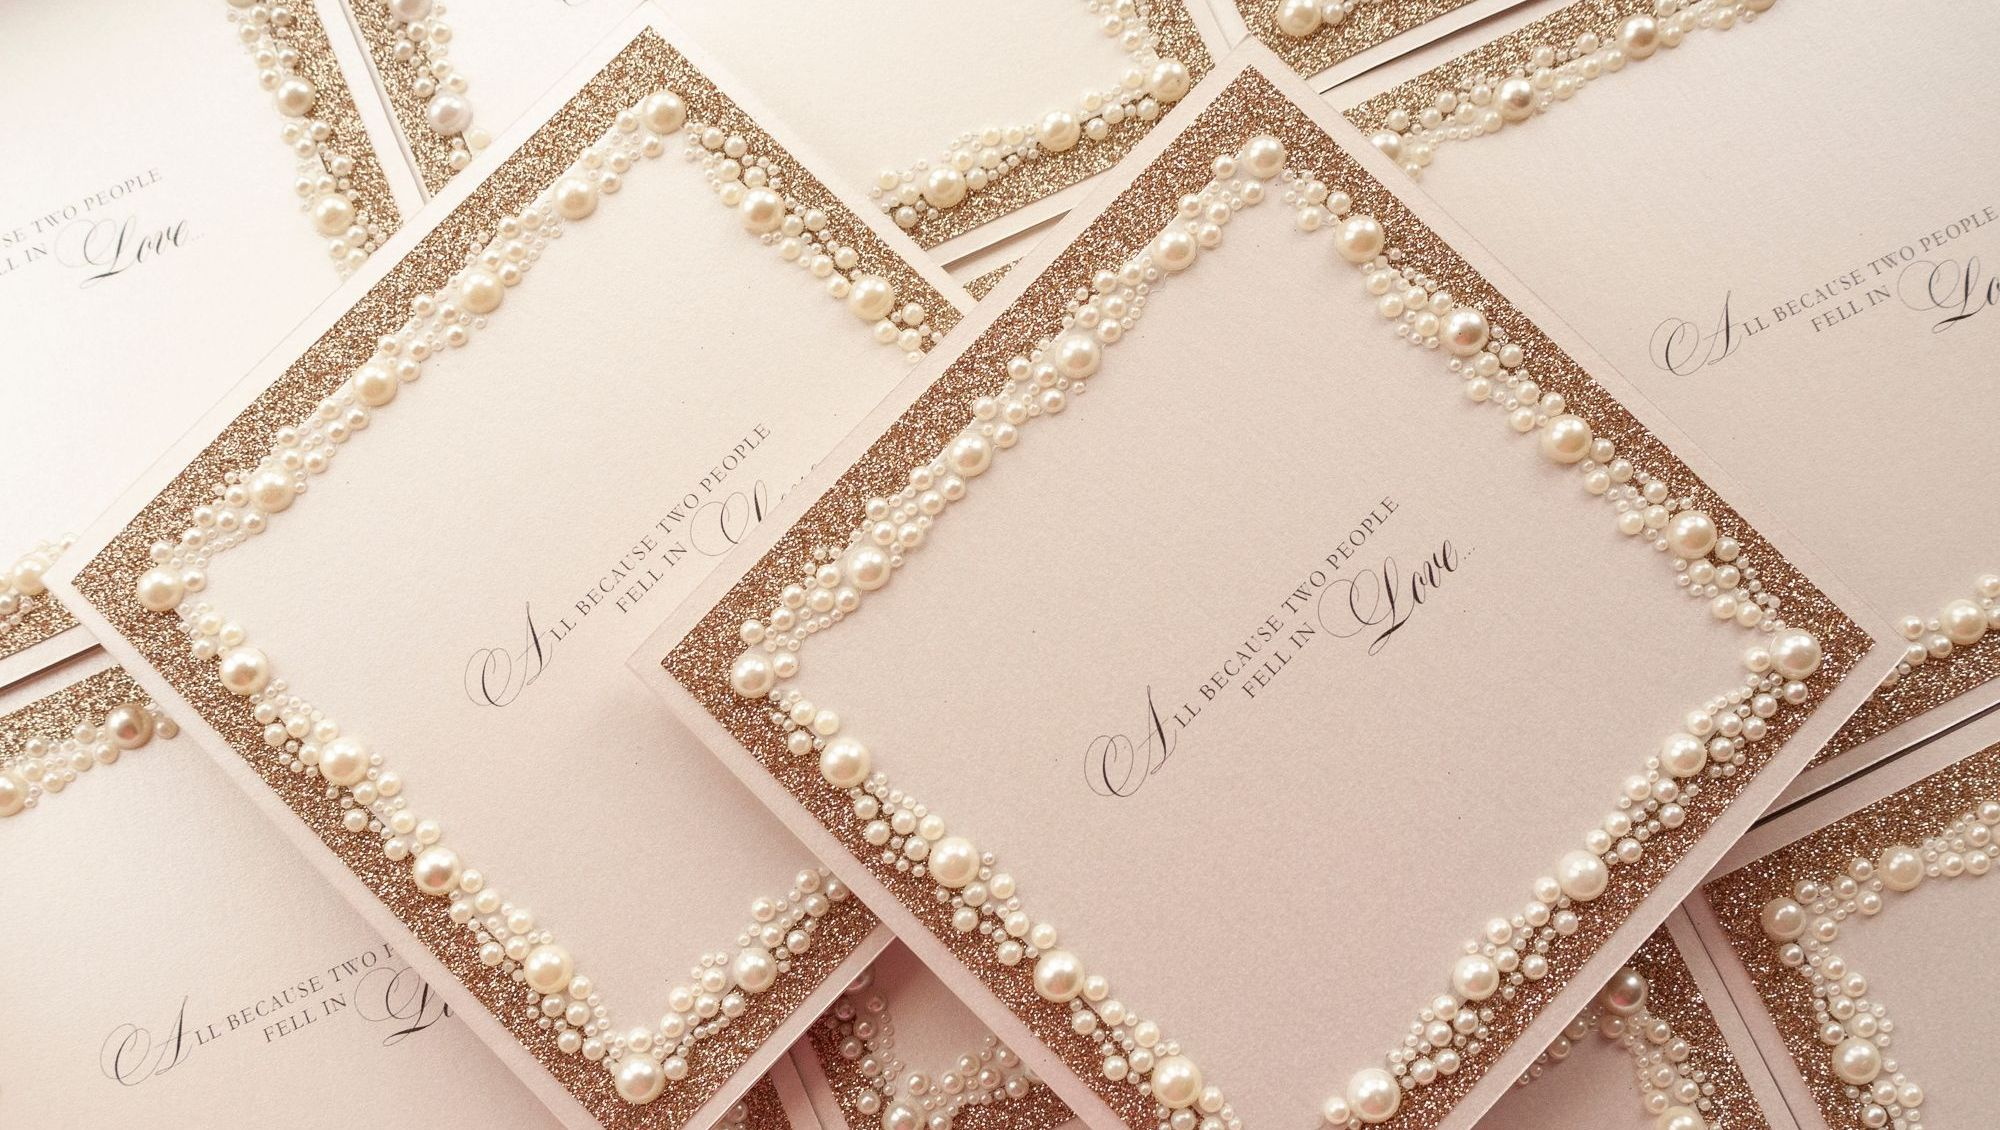 Pearl & Champagne Glitter Wedding Invitations